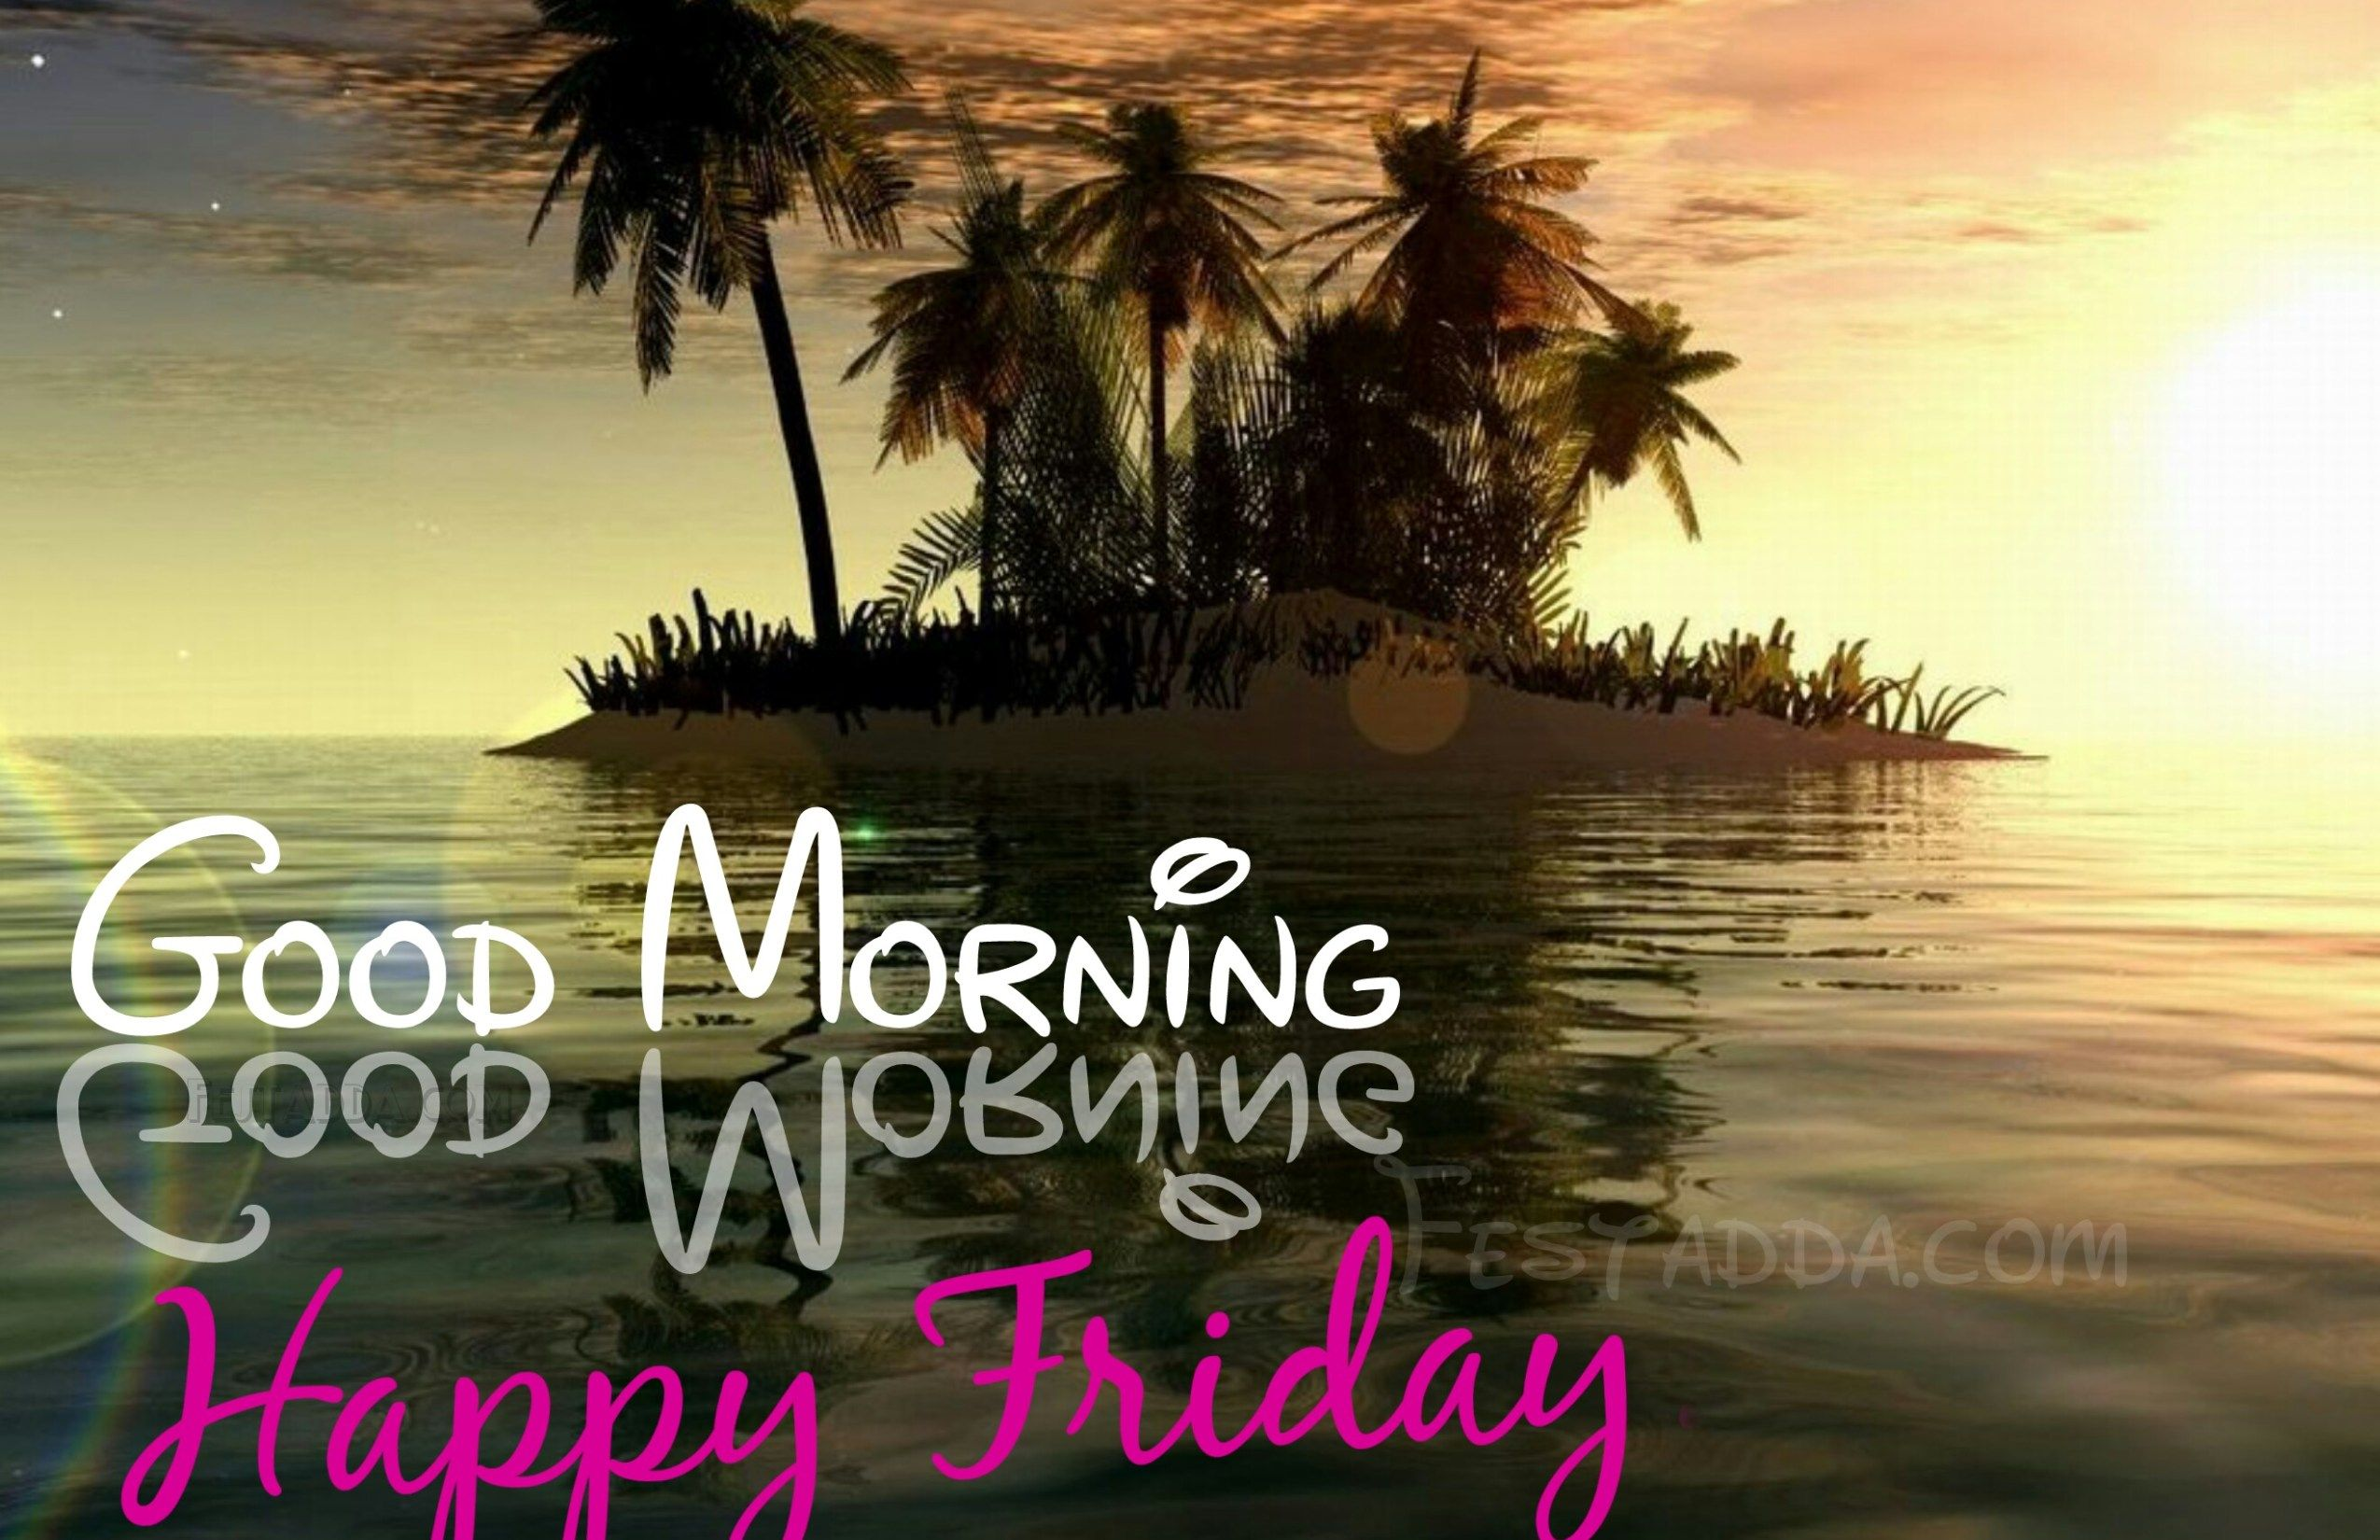 Good morning happy friday images 2019